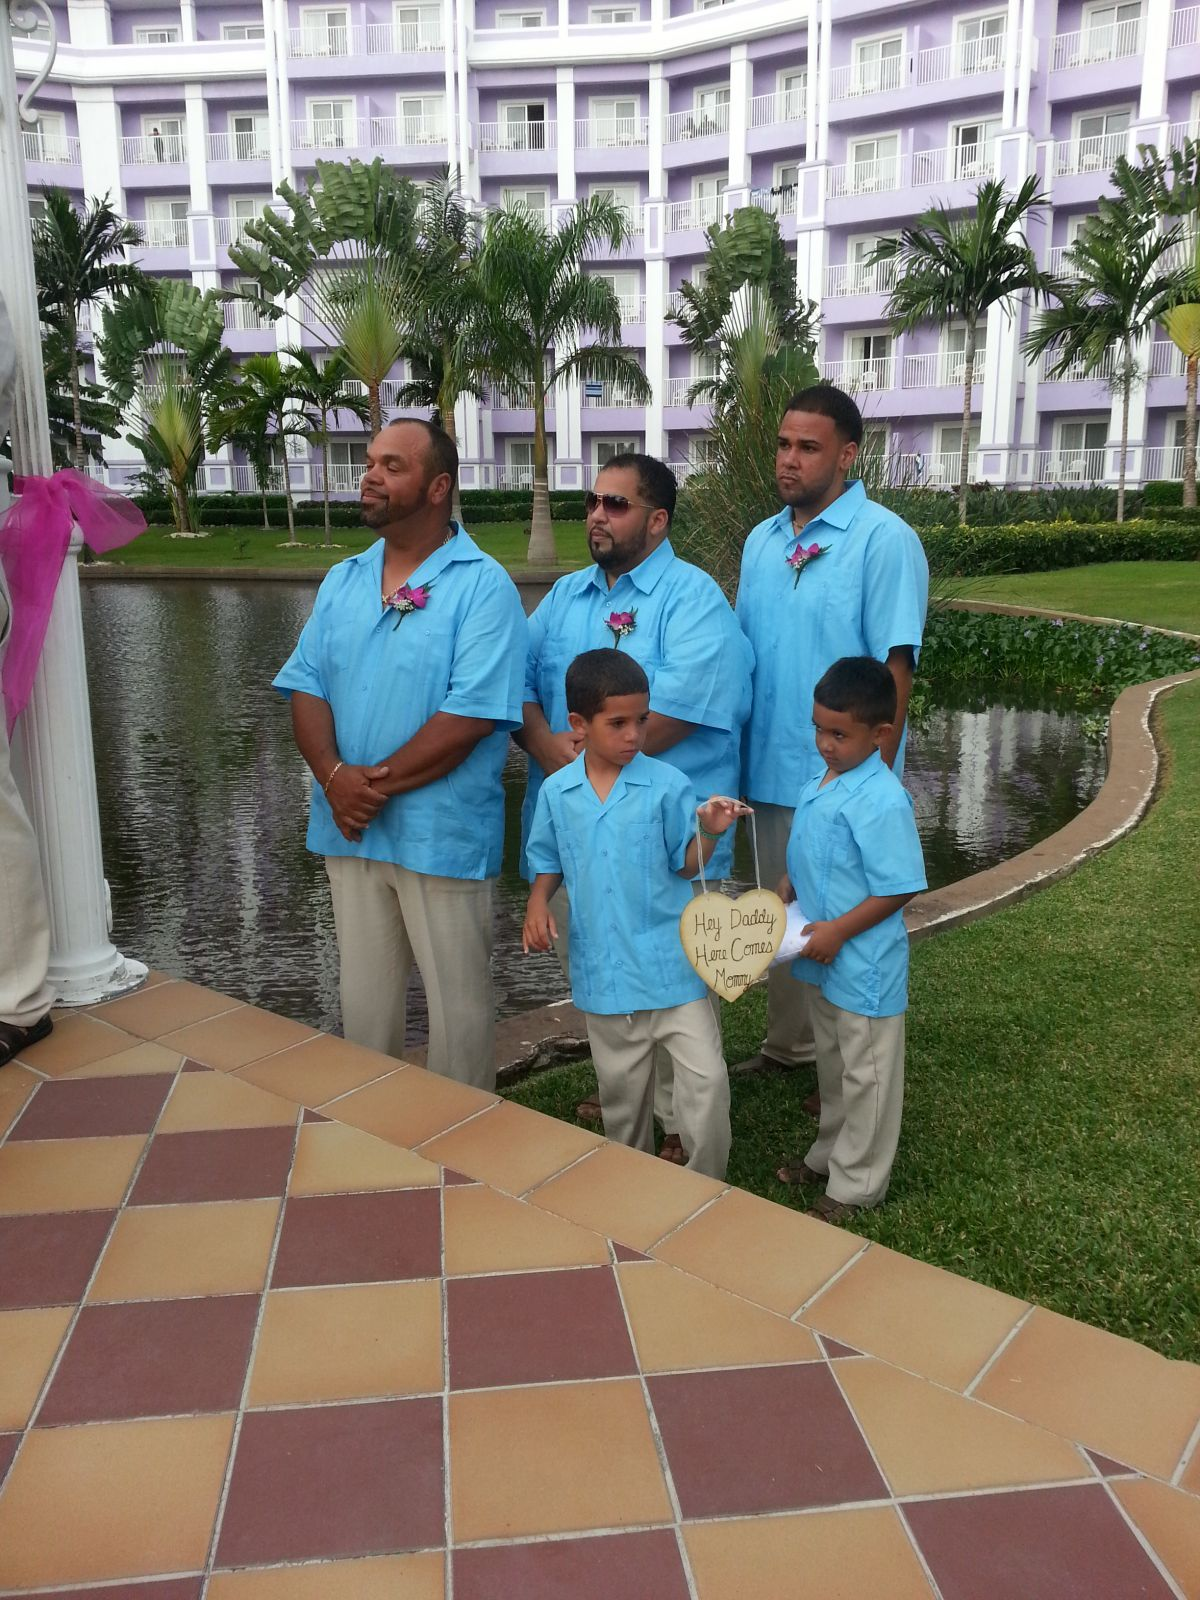 Best Men, the ring bearer and my boys